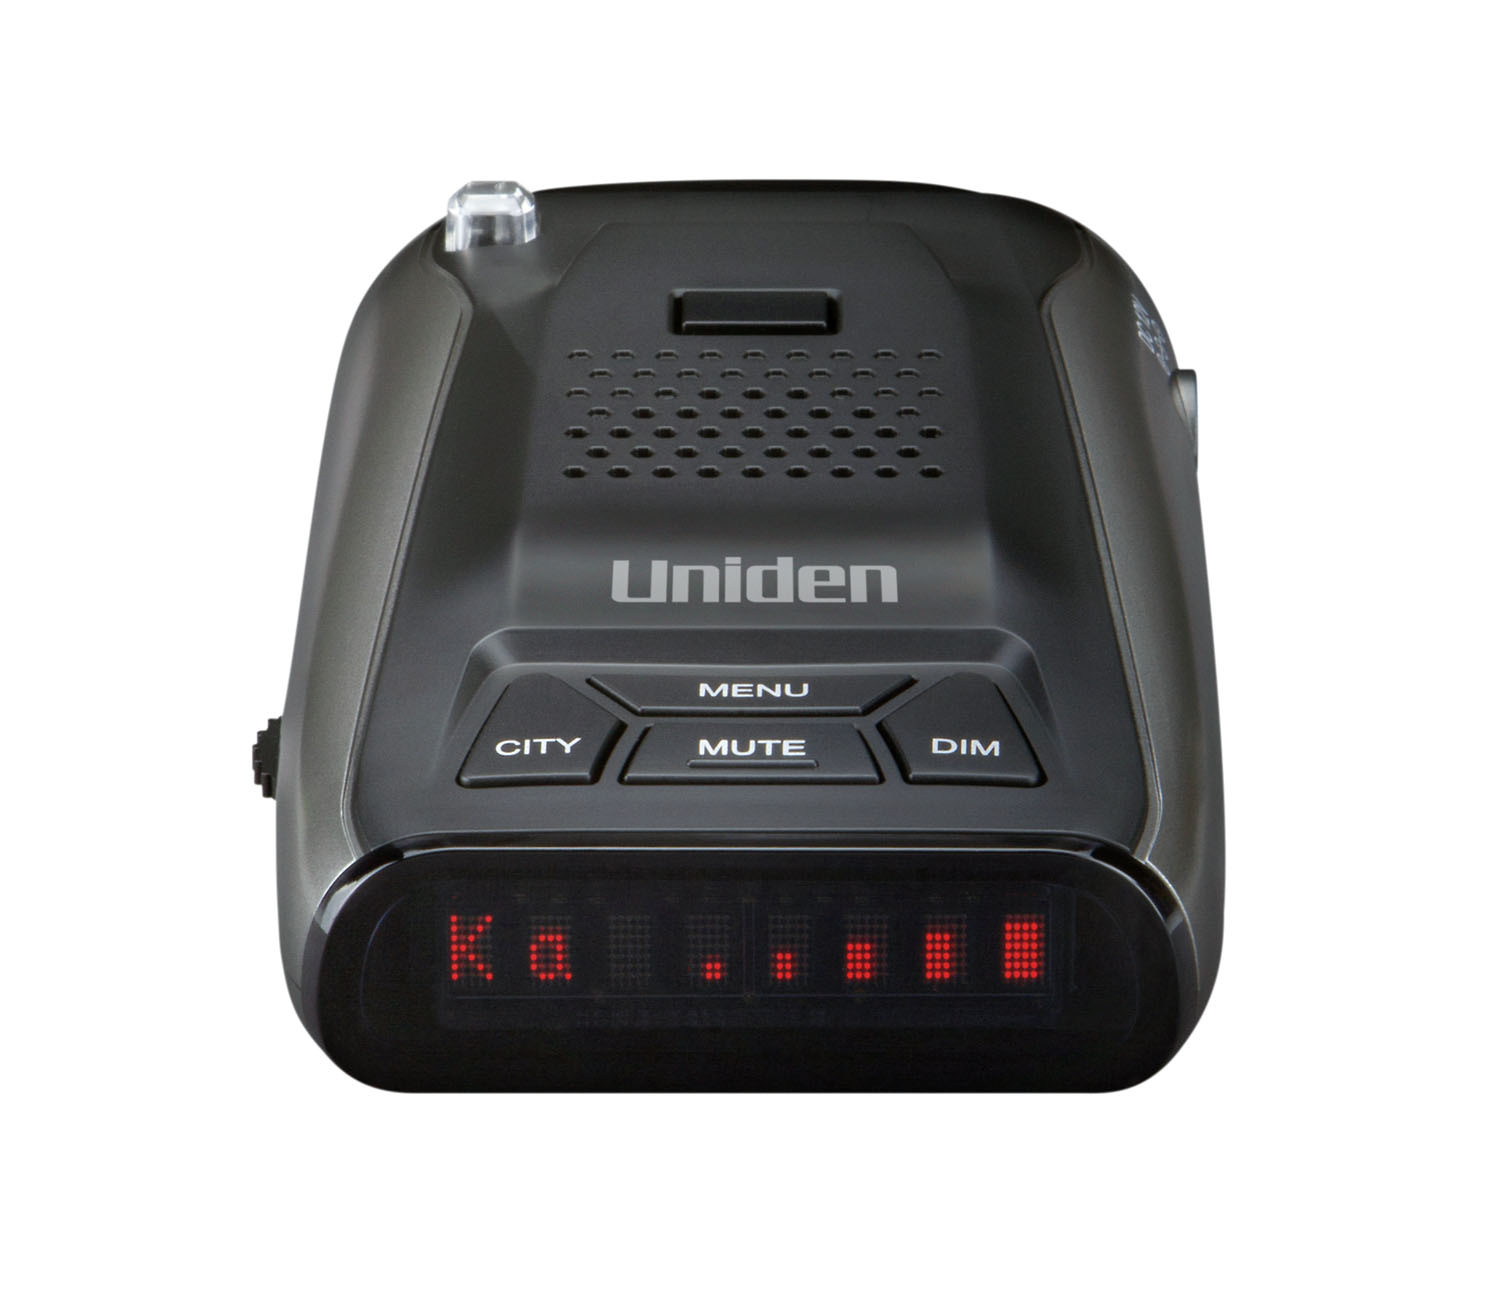 UNIDEN - LONG RANGE RADAR/LASER DETECTOR WITH 360-+ PROTECTION, VOICE ALERT, DOT MATRIX DISPLAY, HIGHWAY/CITY MODES, MUTE & BRIG